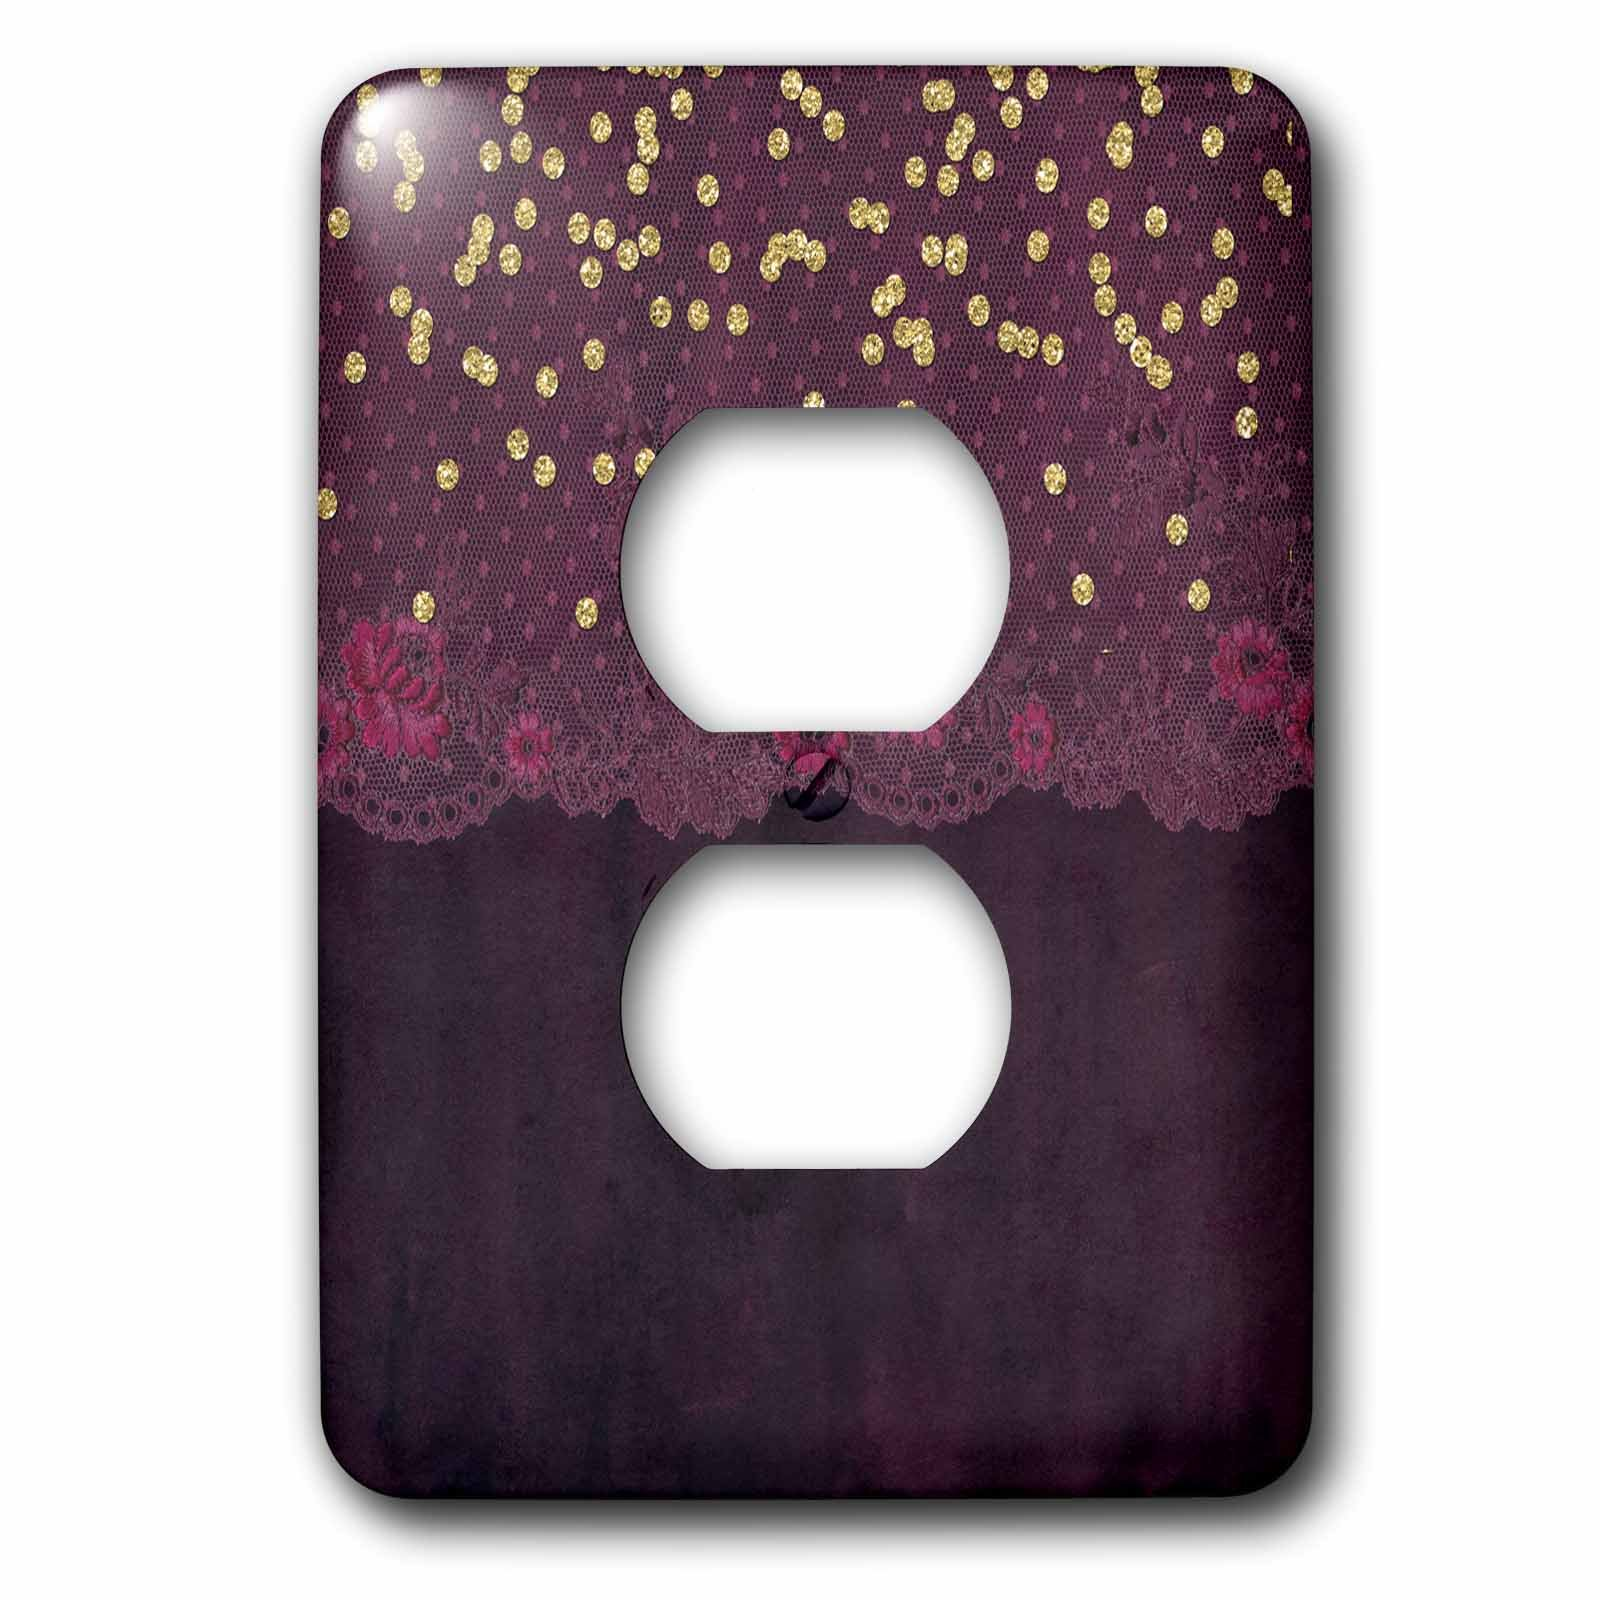 3dRose Uta Naumann Vintage Lace Collection - Purple Floral Luxury Lace and Gold Confetti on Watercolor Background - Light Switch Covers - 2 plug outlet cover (lsp_267044_6)